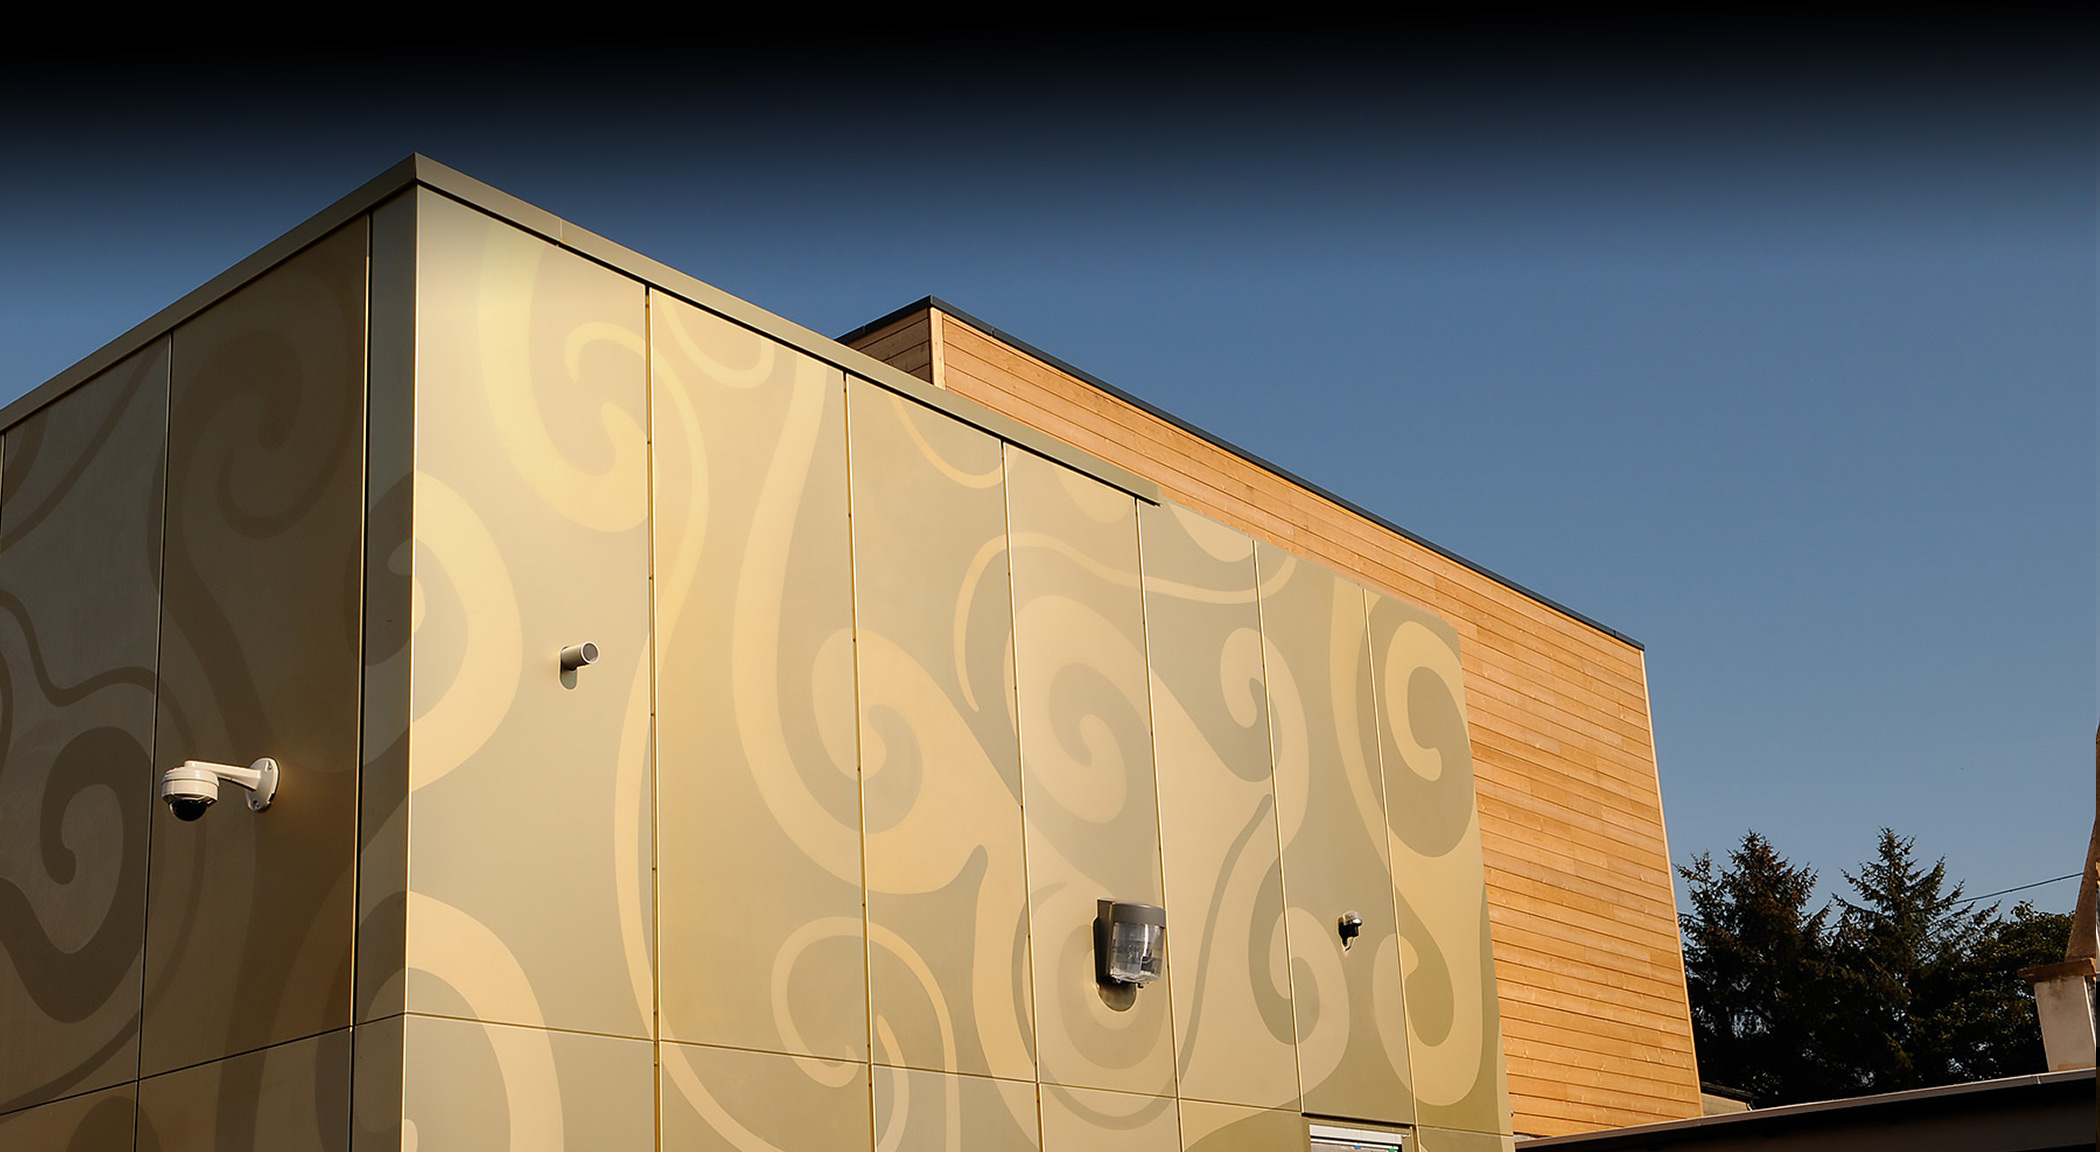 Rainscreen Cladding by Archital Ltd